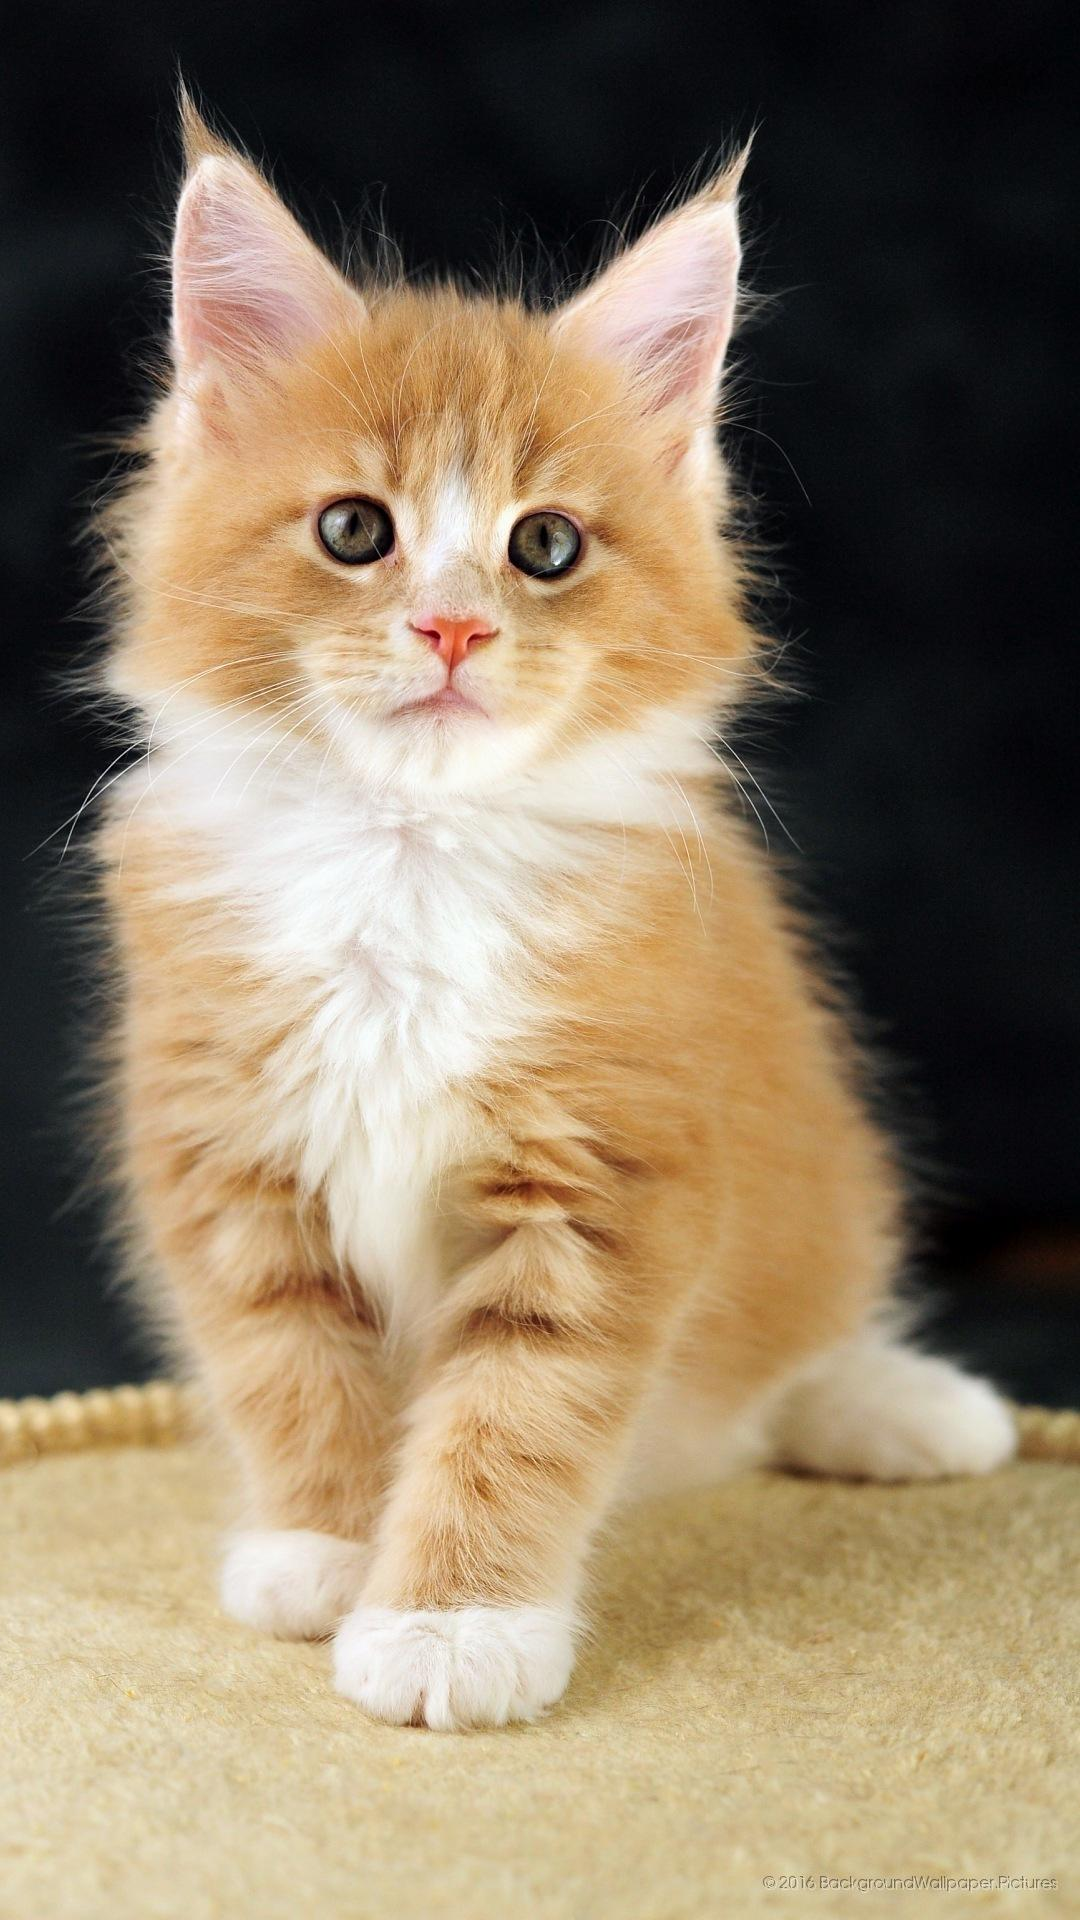 Hd Cat Wallpapers For Mobile 25